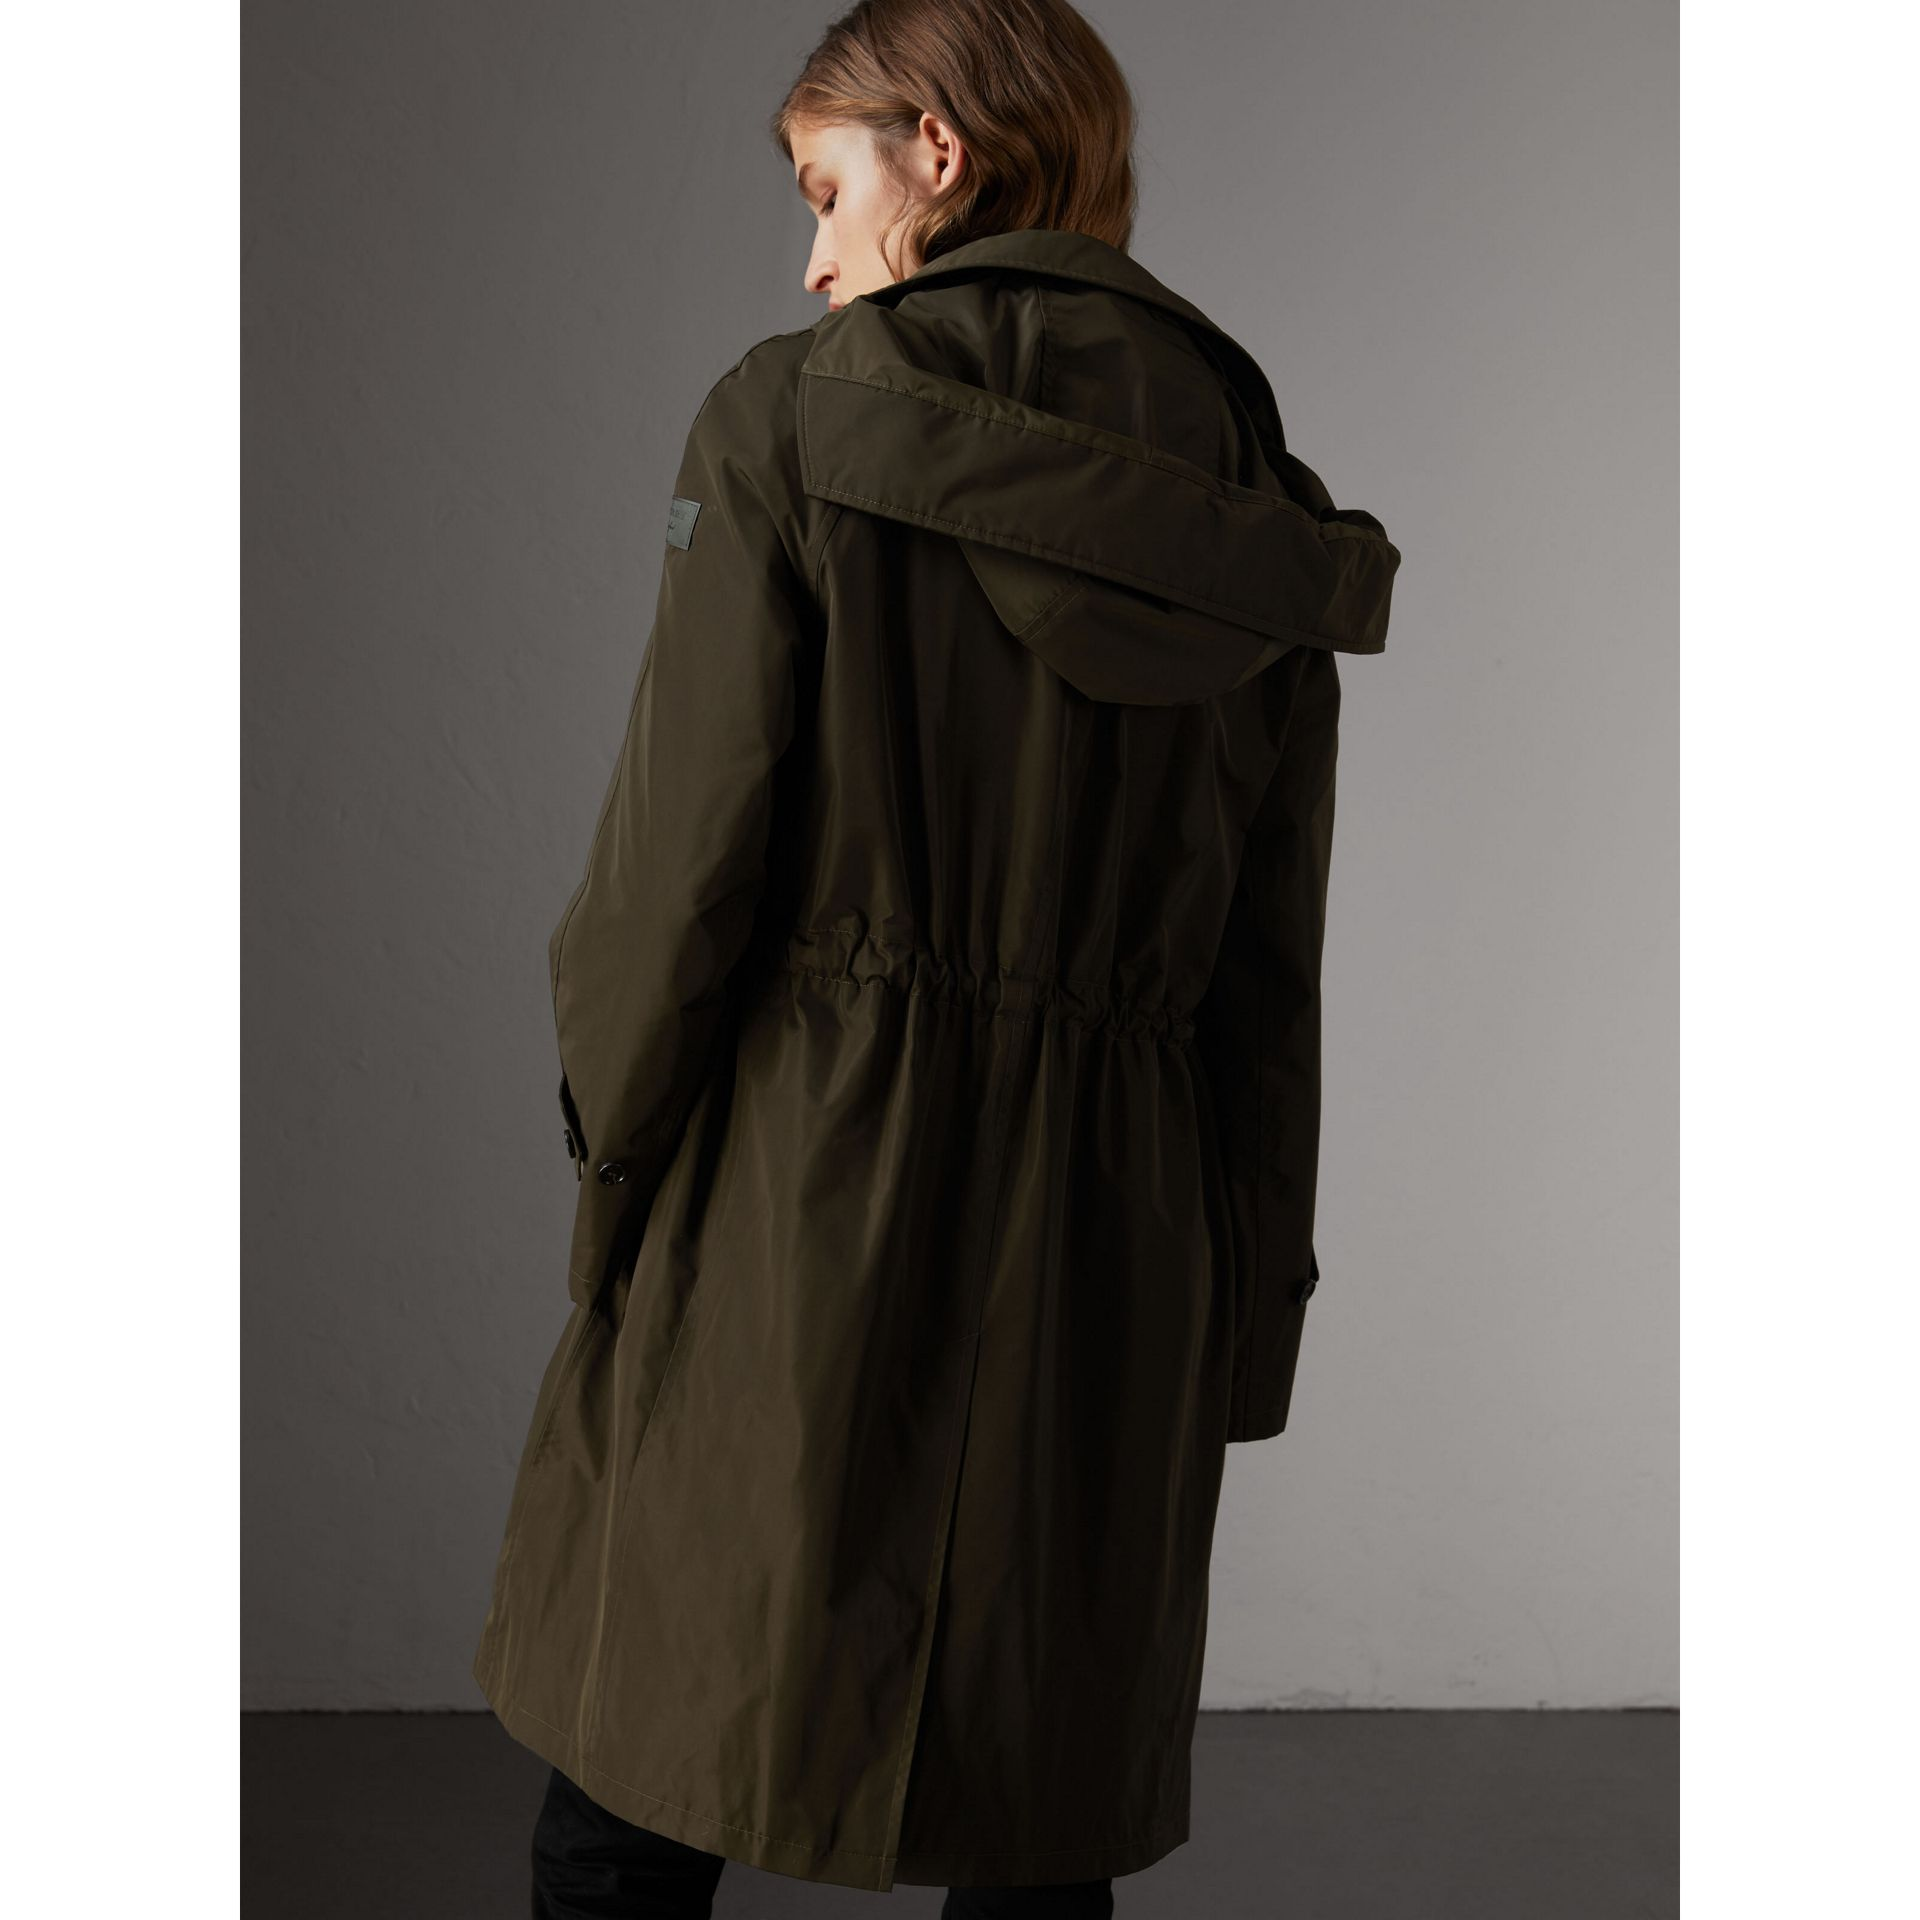 Detachable Hood Showerproof Car Coat in Dark Olive - Women | Burberry United States - gallery image 2